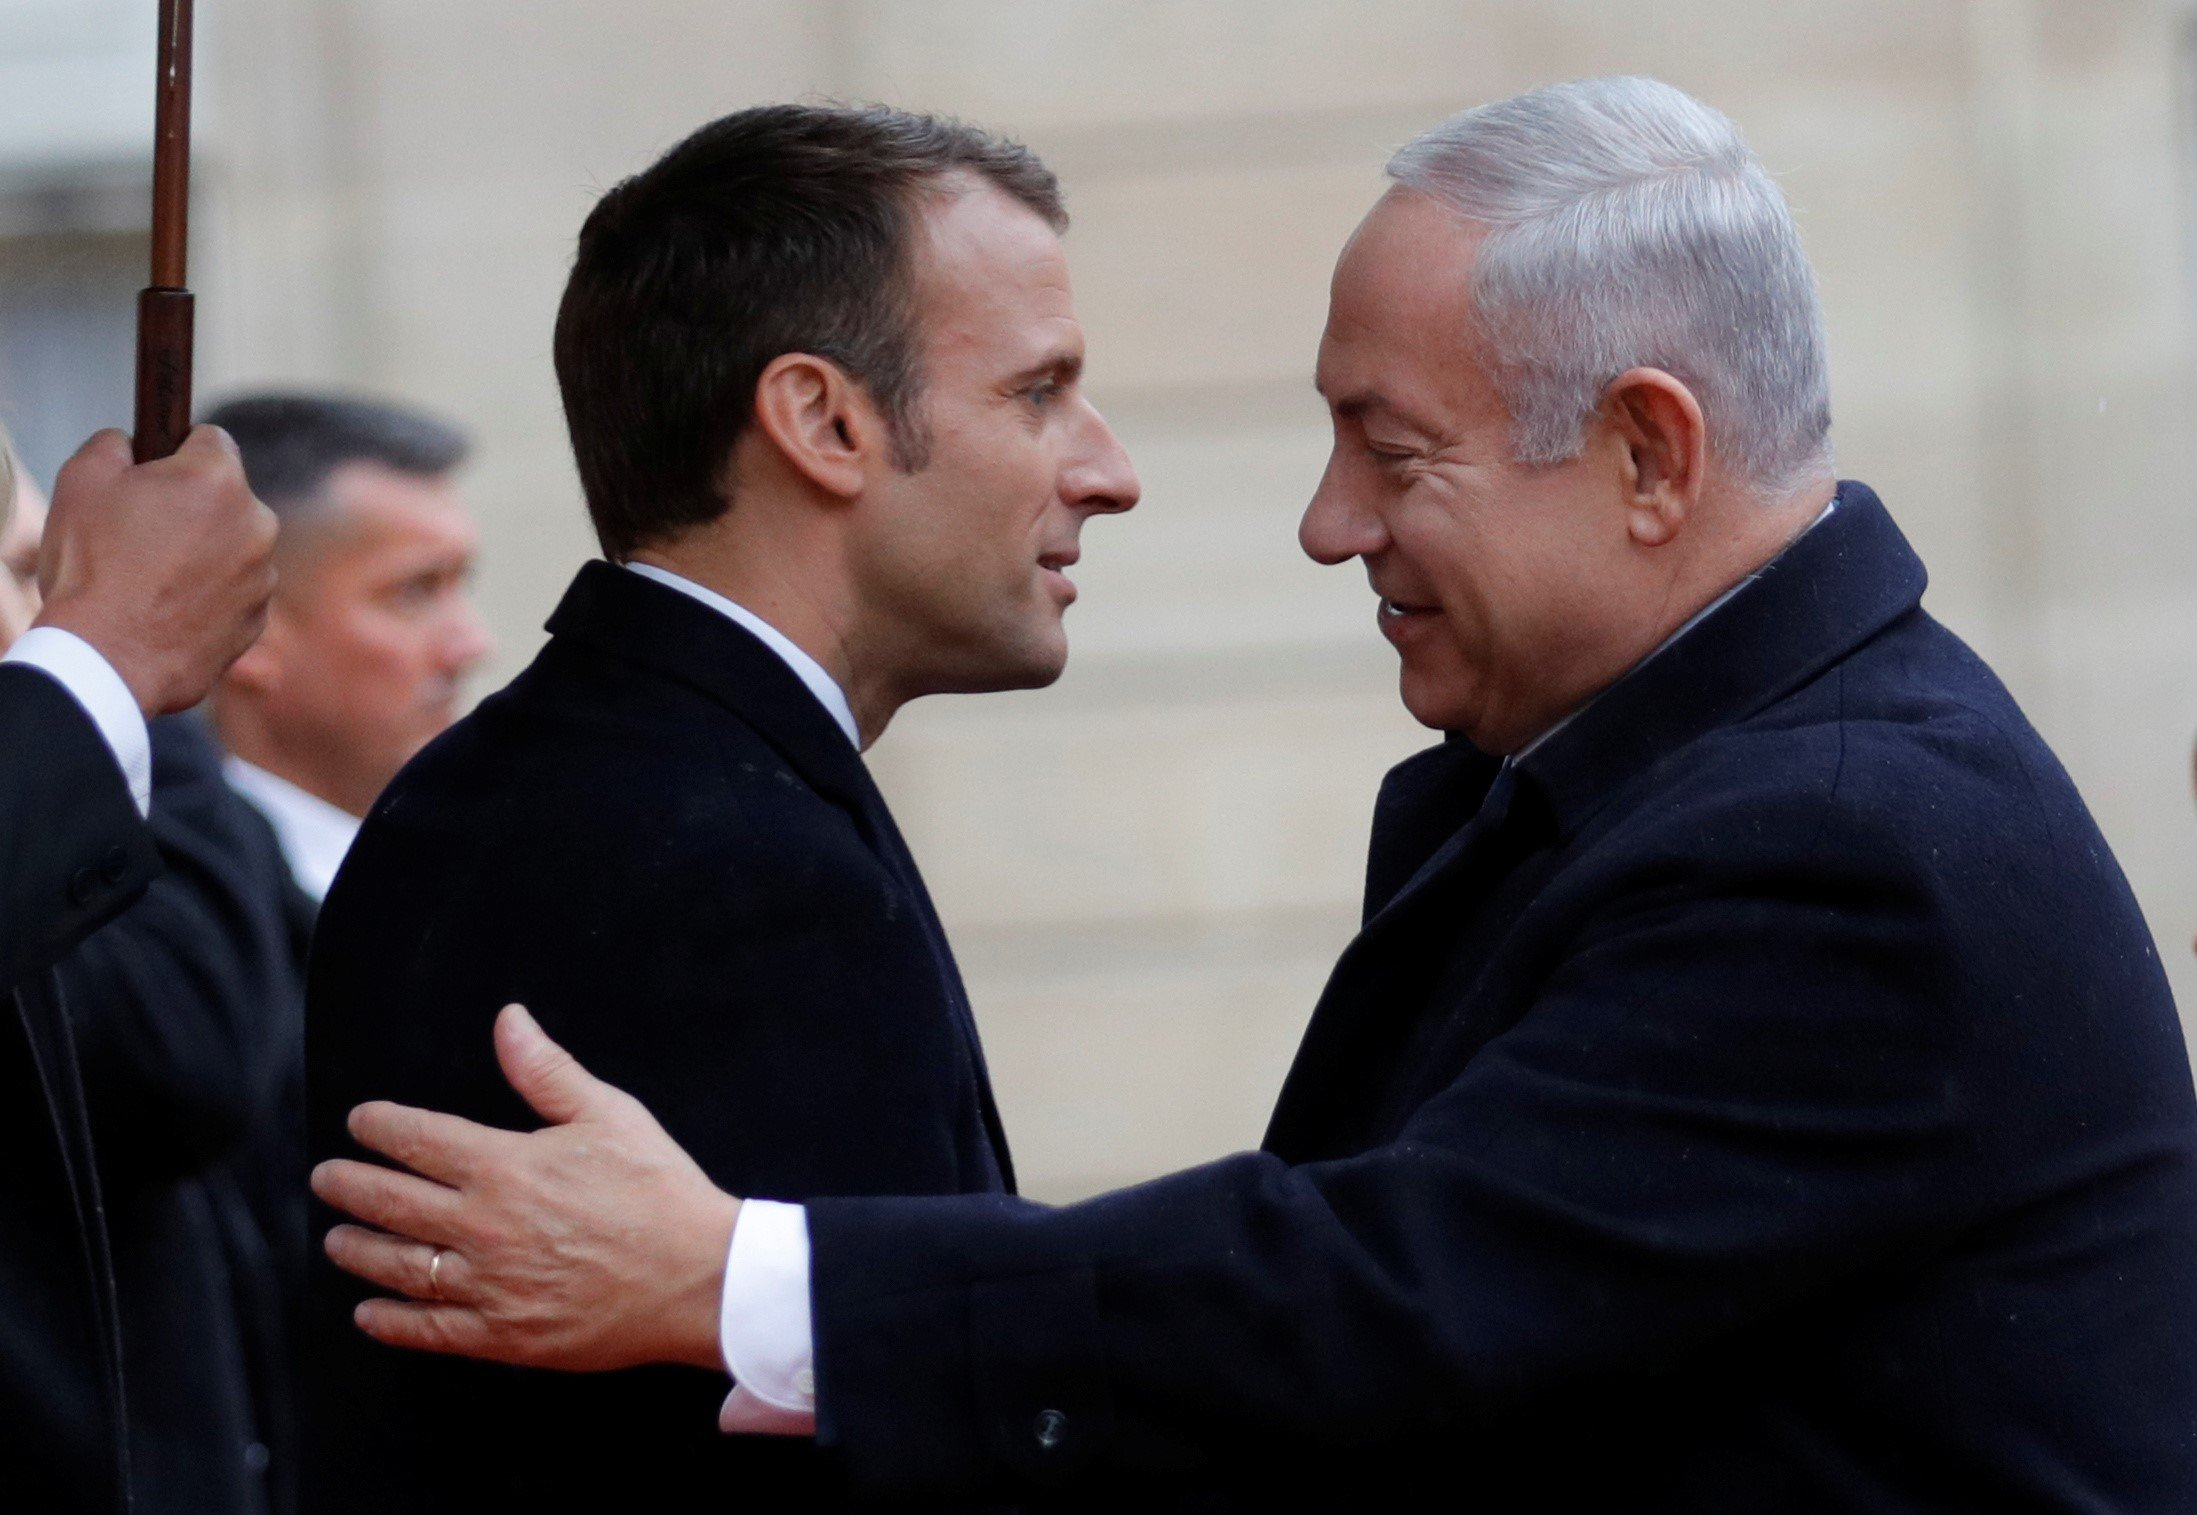 French President Emmanuel Macron welcome Israel Prime Minister Benjamin Netanyahu in Paris, France, on 11 November, 2018 (Reuters)